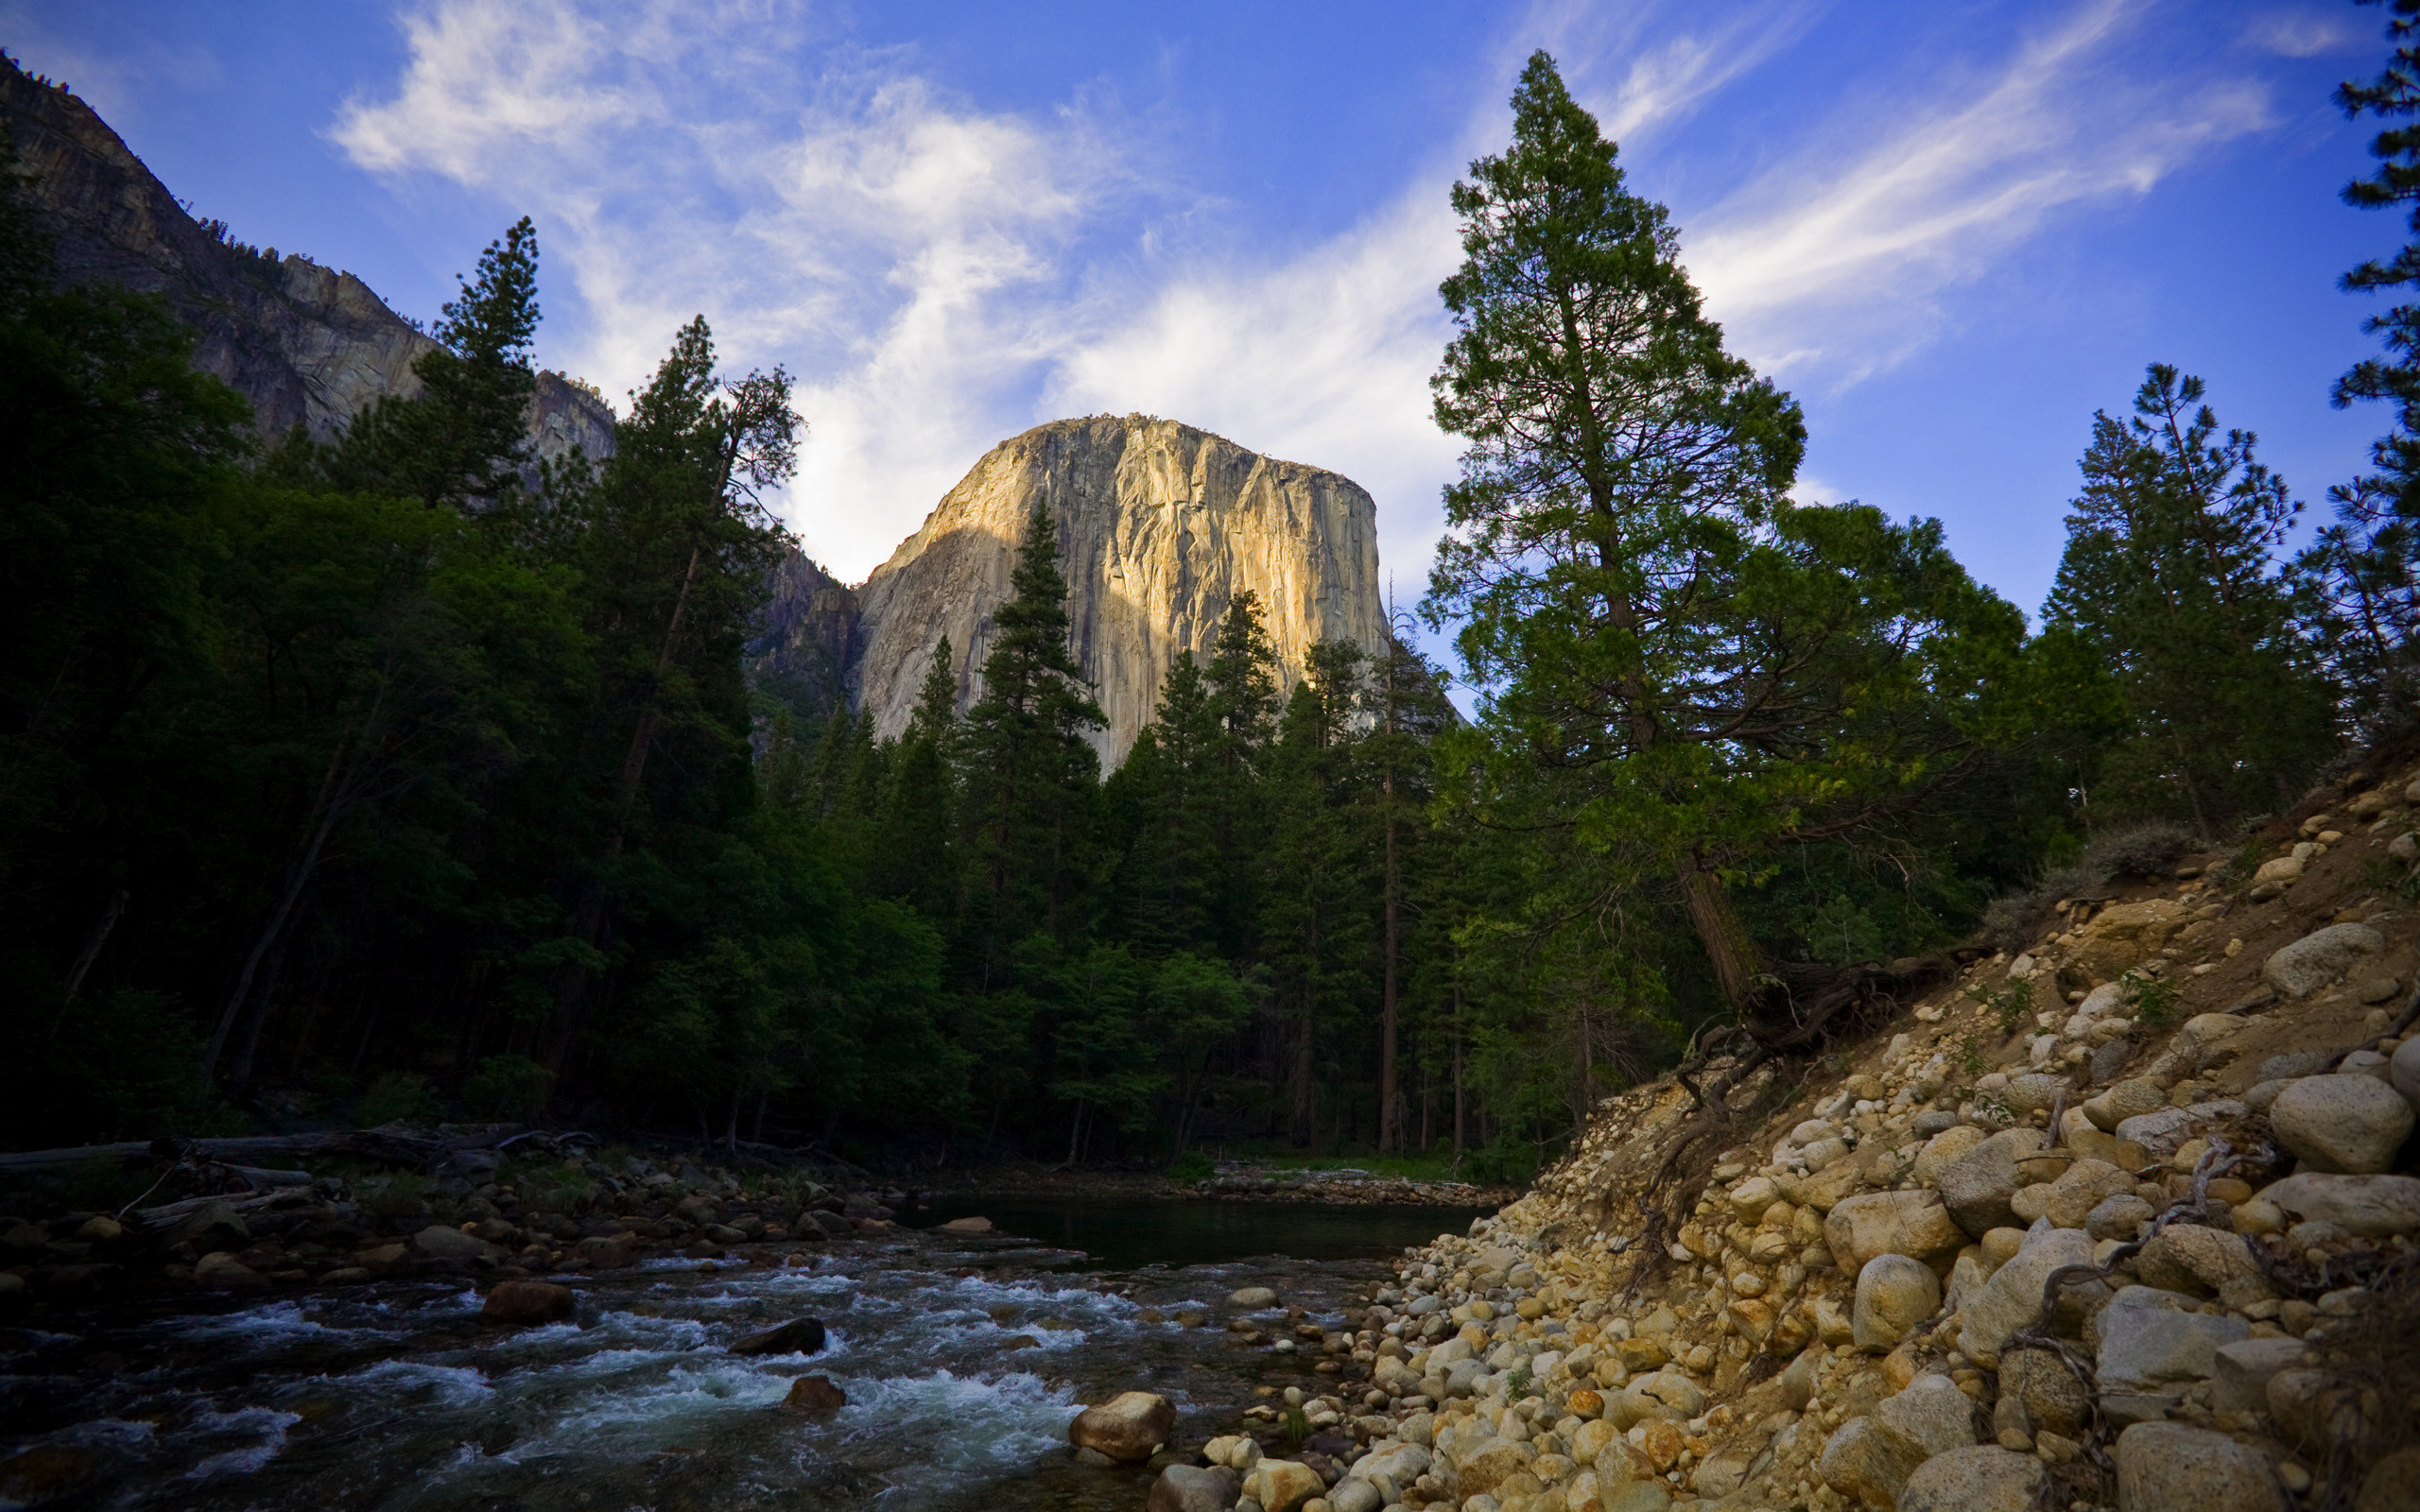 General 2560x1600 El Capitan forest Yosemite National Park river trees USA